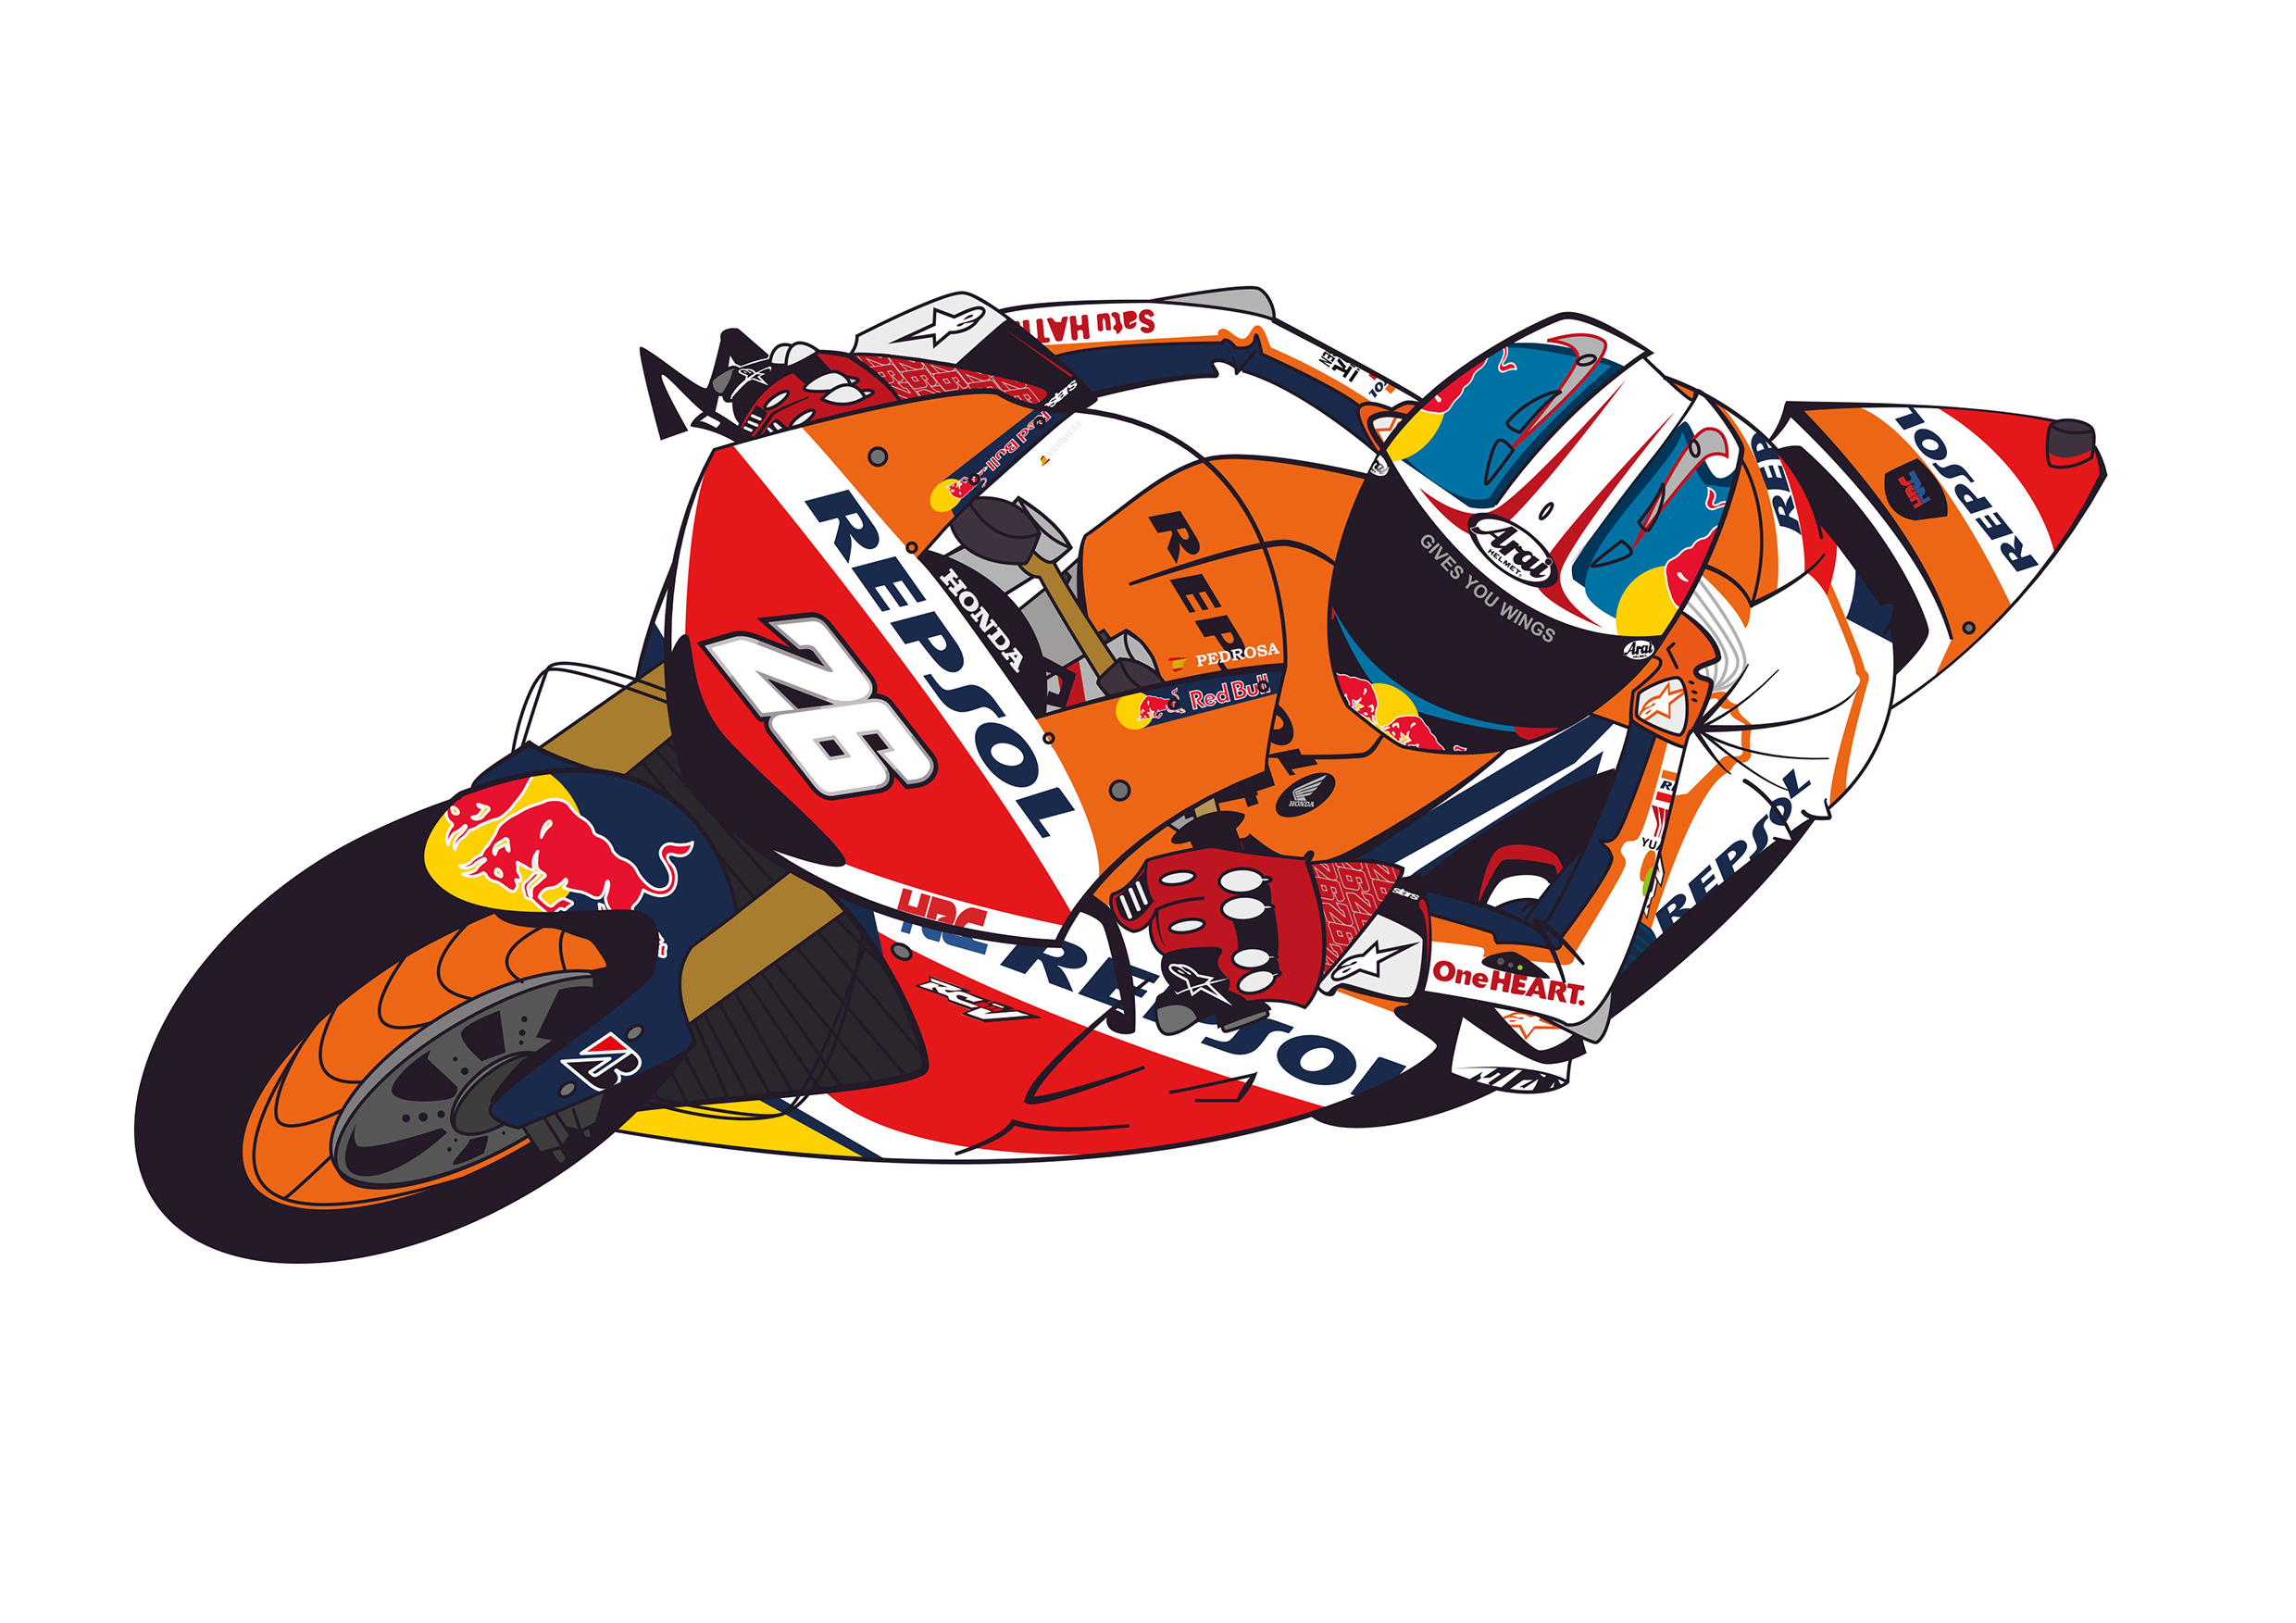 Dani Pedrosa vectorial drawing process.